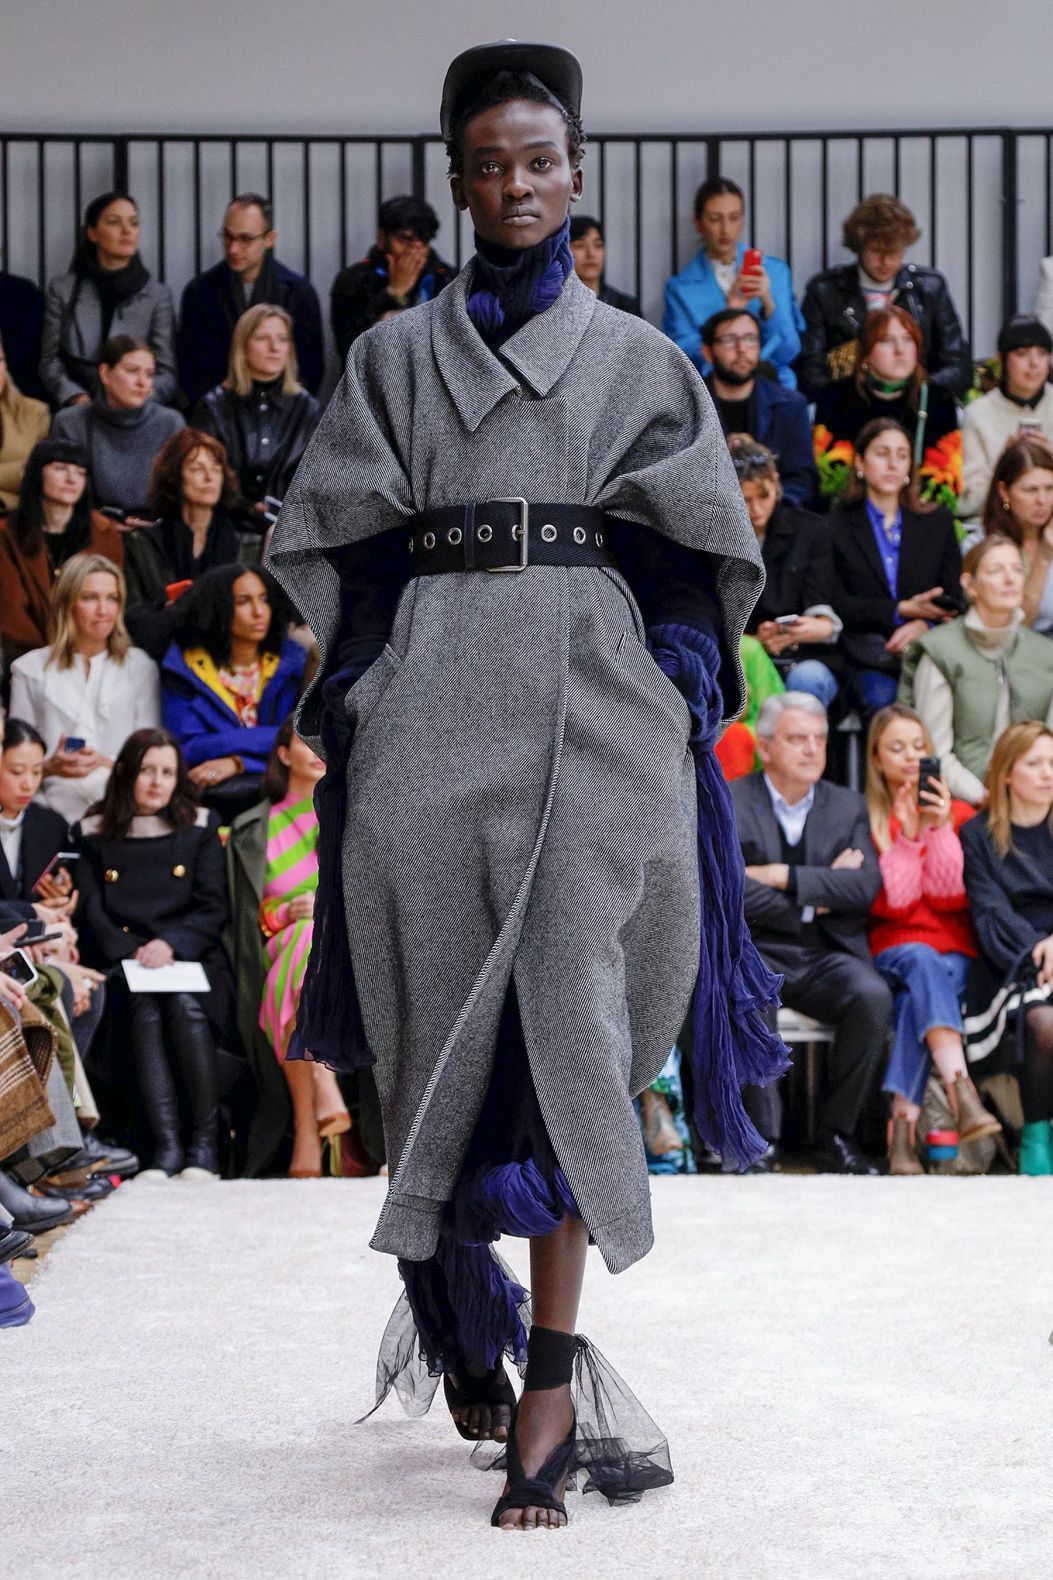 black model in dark grey coat and black belt by JW Anderson